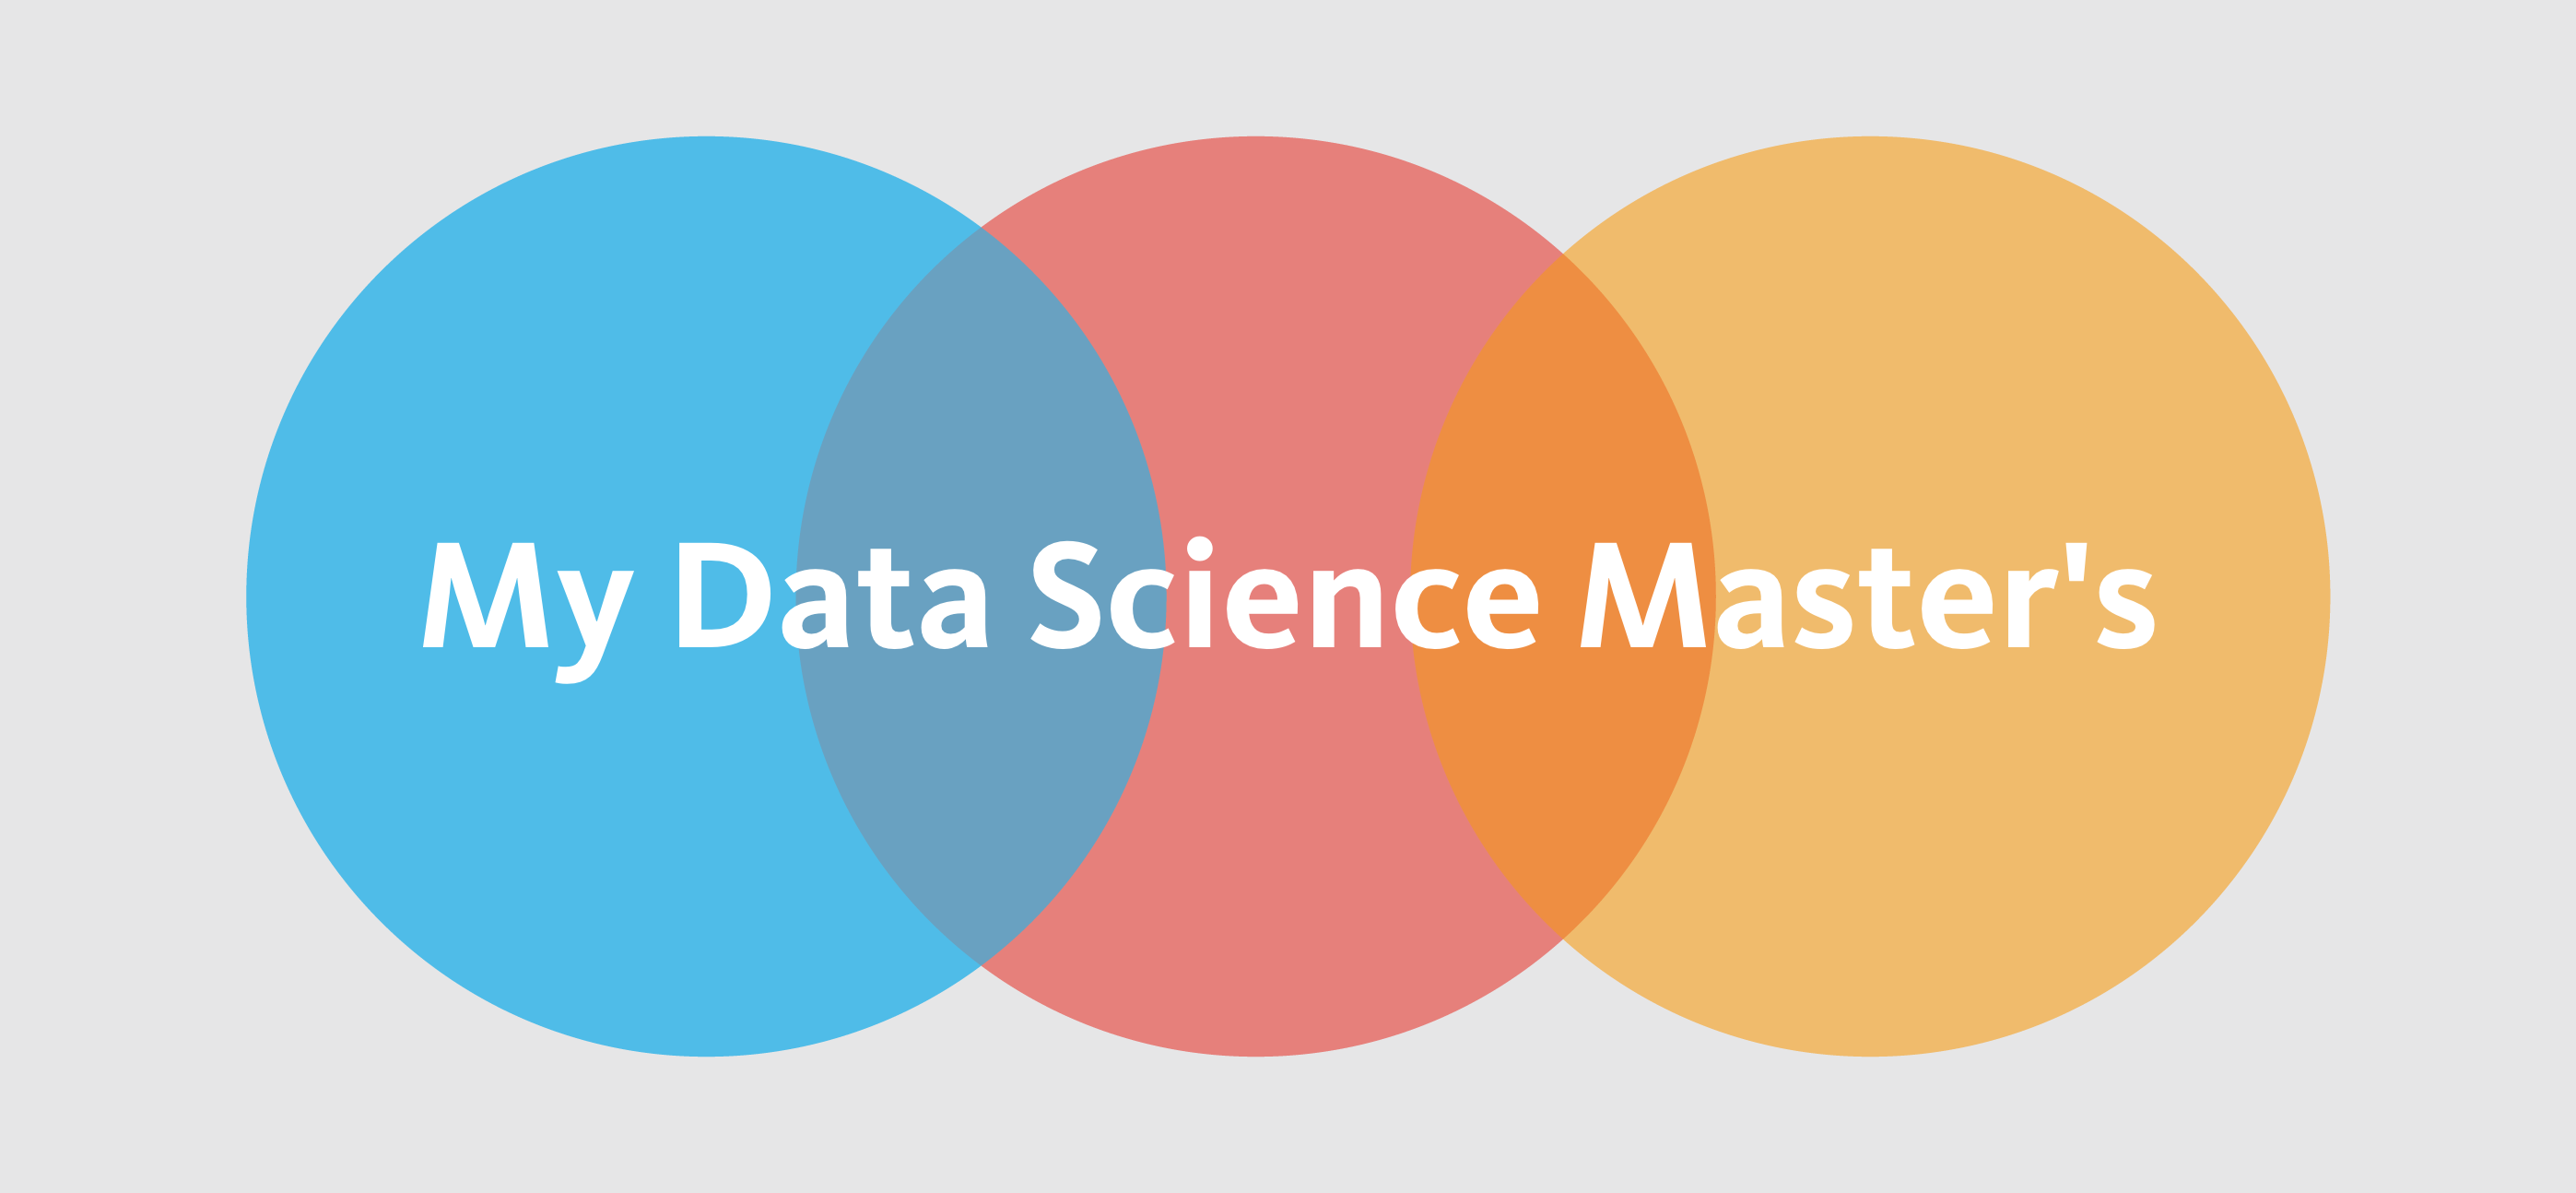 I Dropped Out of School to Create My Own Data Science Master's